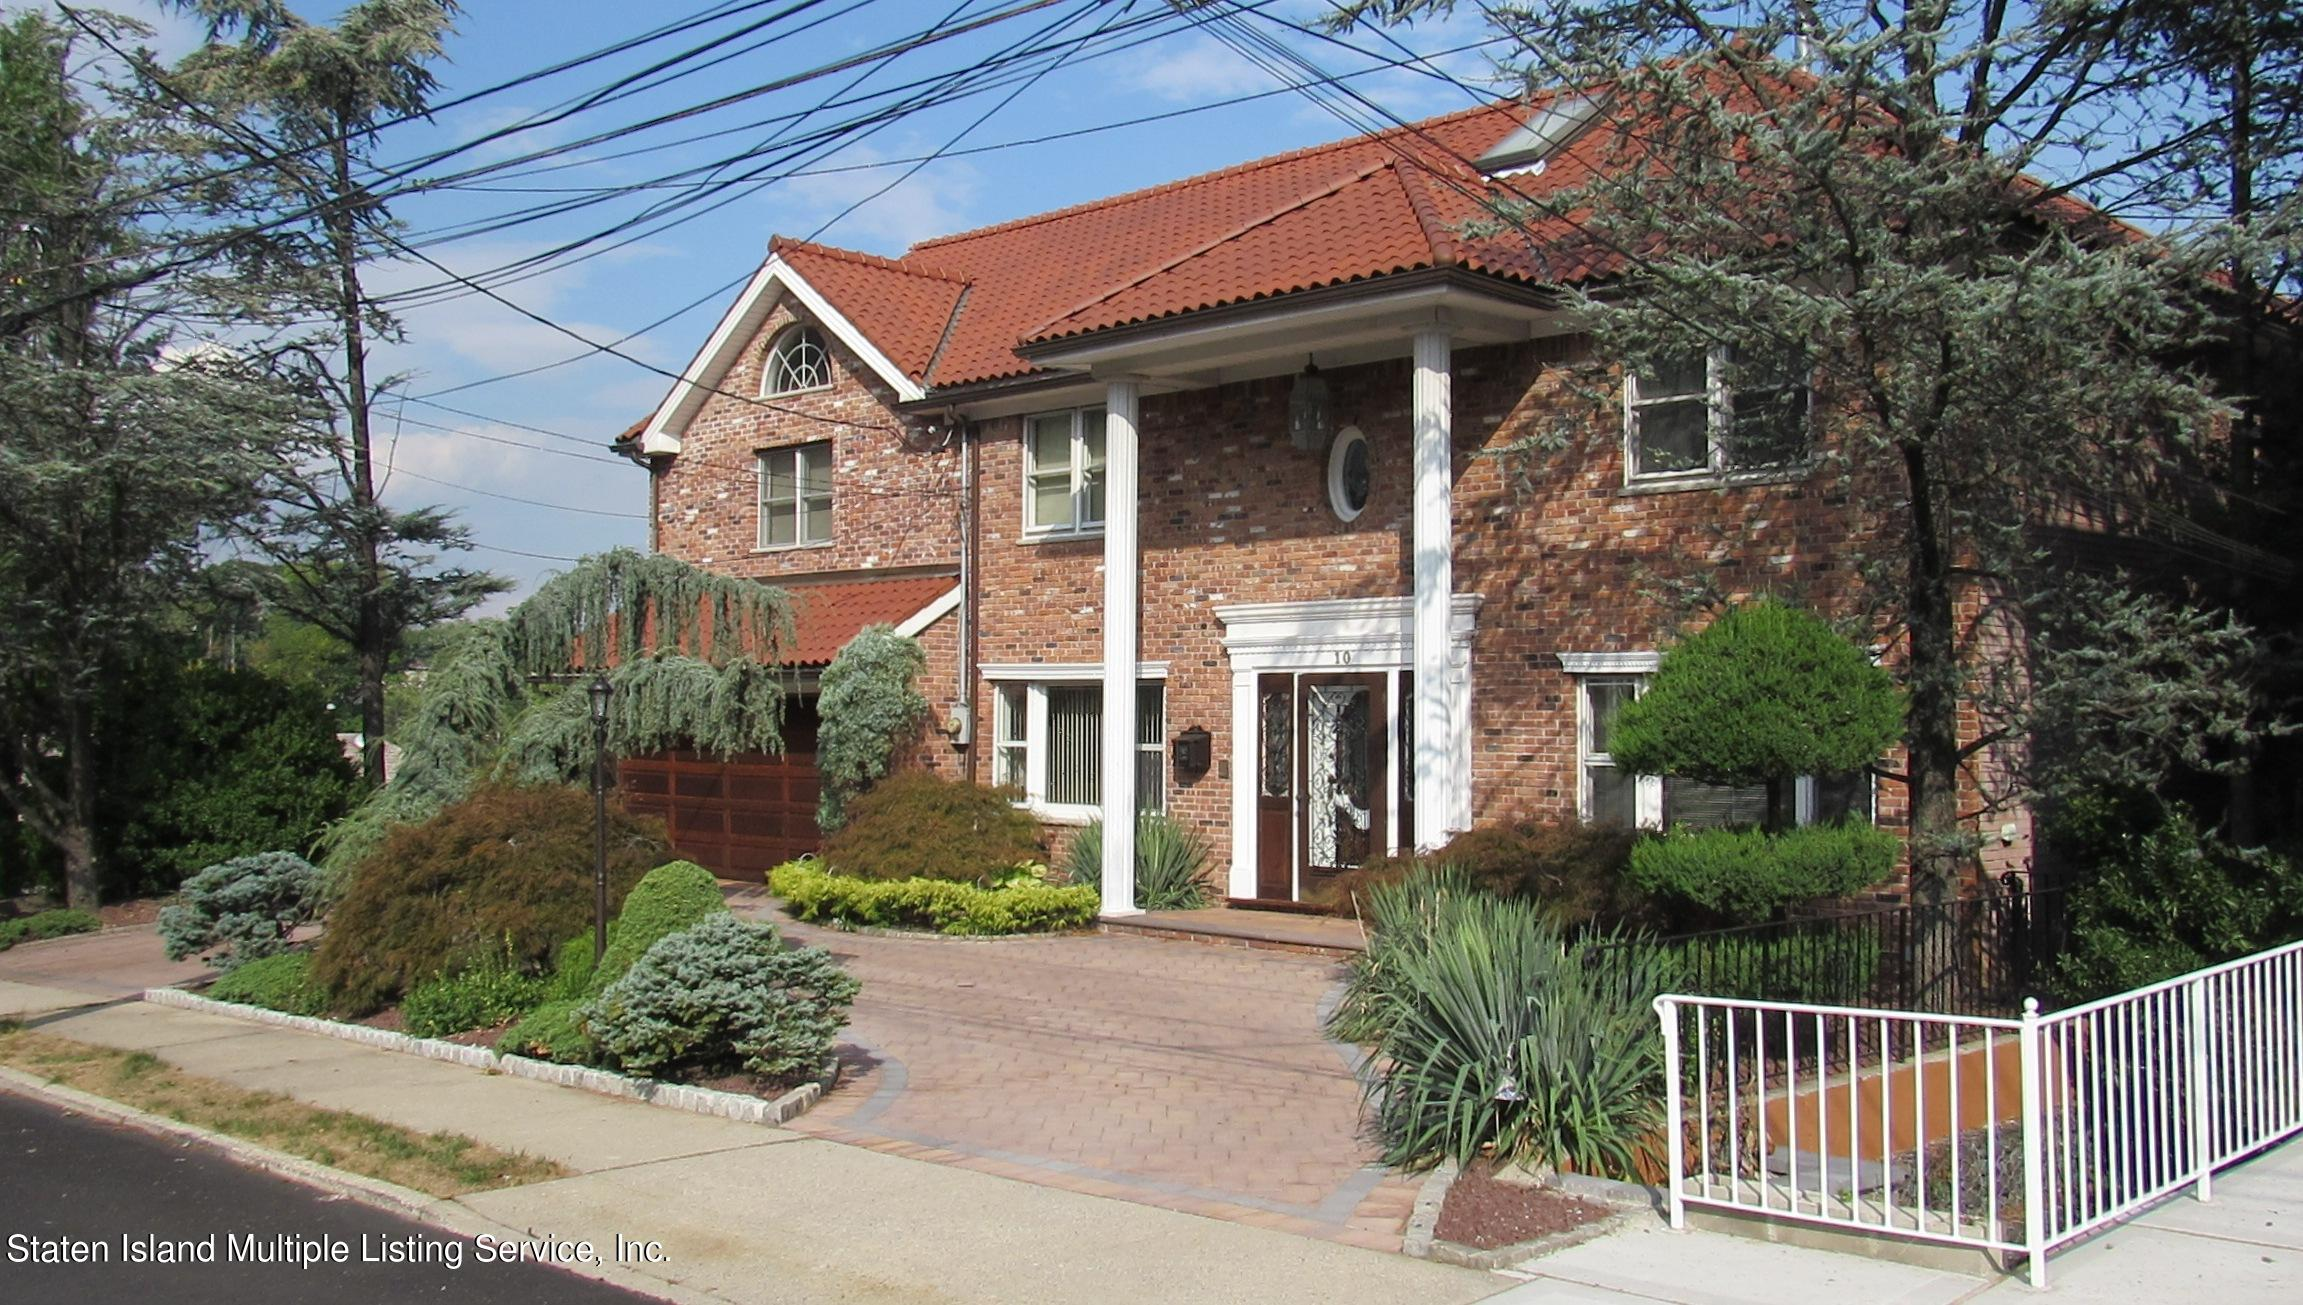 Single Family - Detached in Emerson Hill - 10 Wilson Terrace  Staten Island, NY 10304